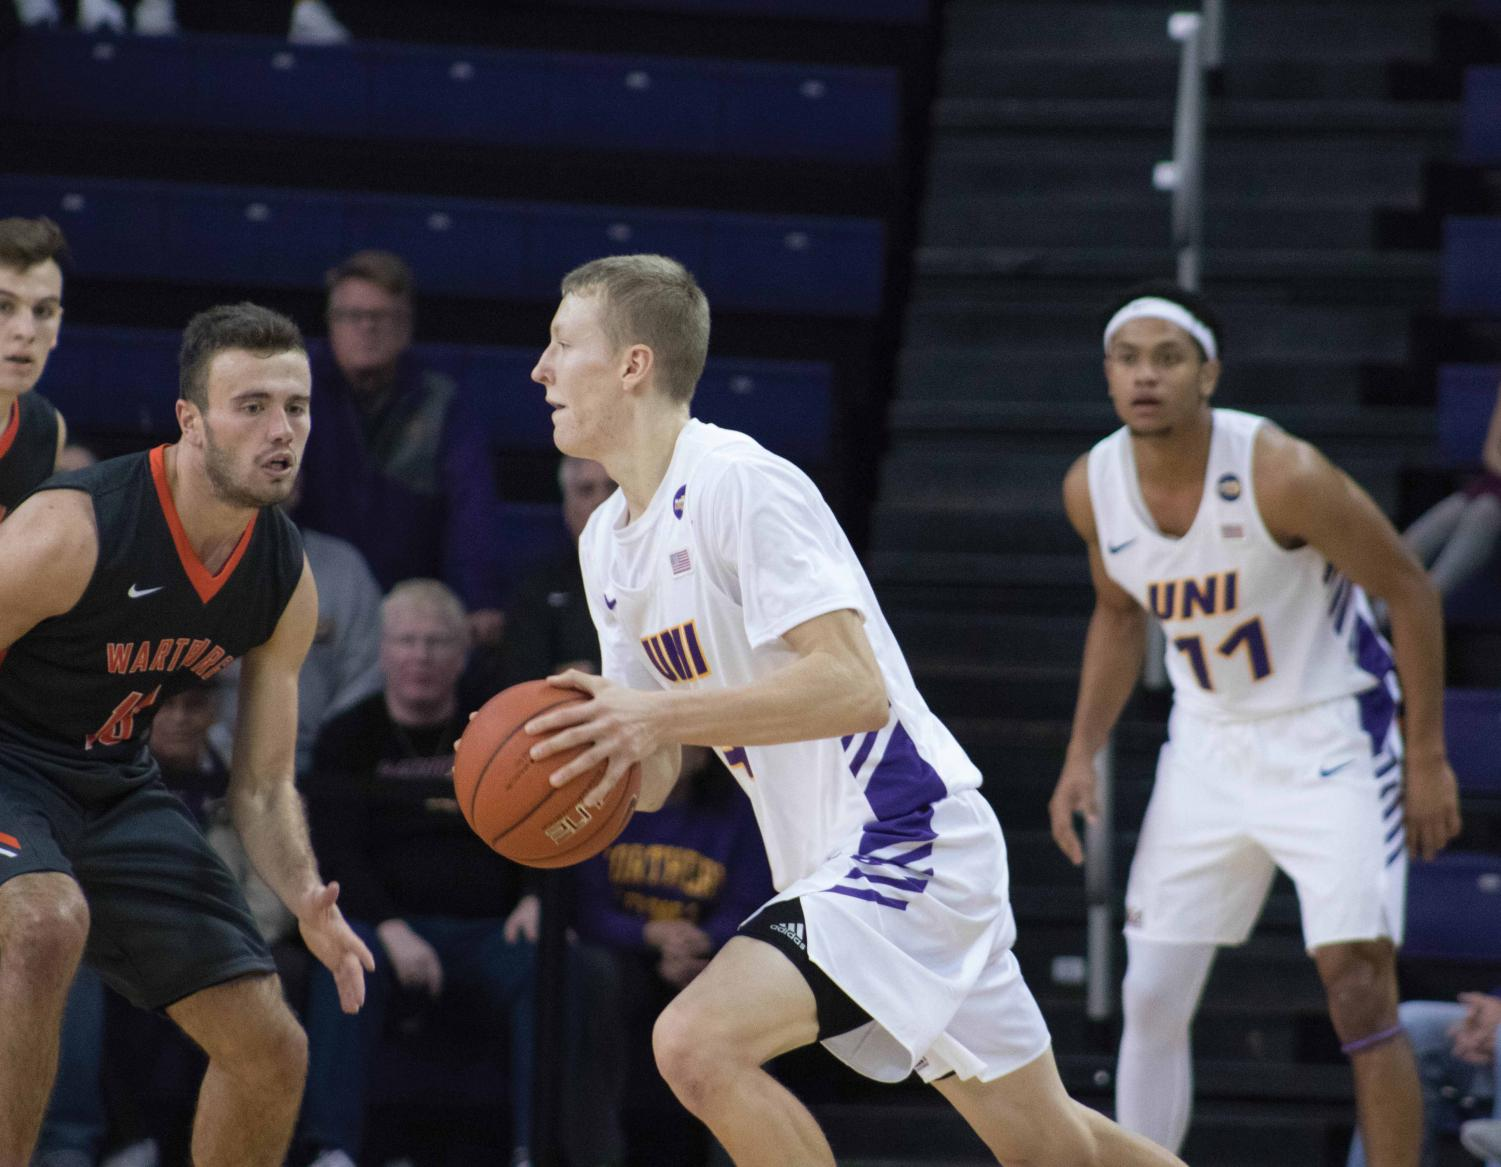 A.J. Green (above) scored 16 points in his collegiate debut against the Wartburg Knights in UNI's 110-69 exhibition win on Oct. 28.